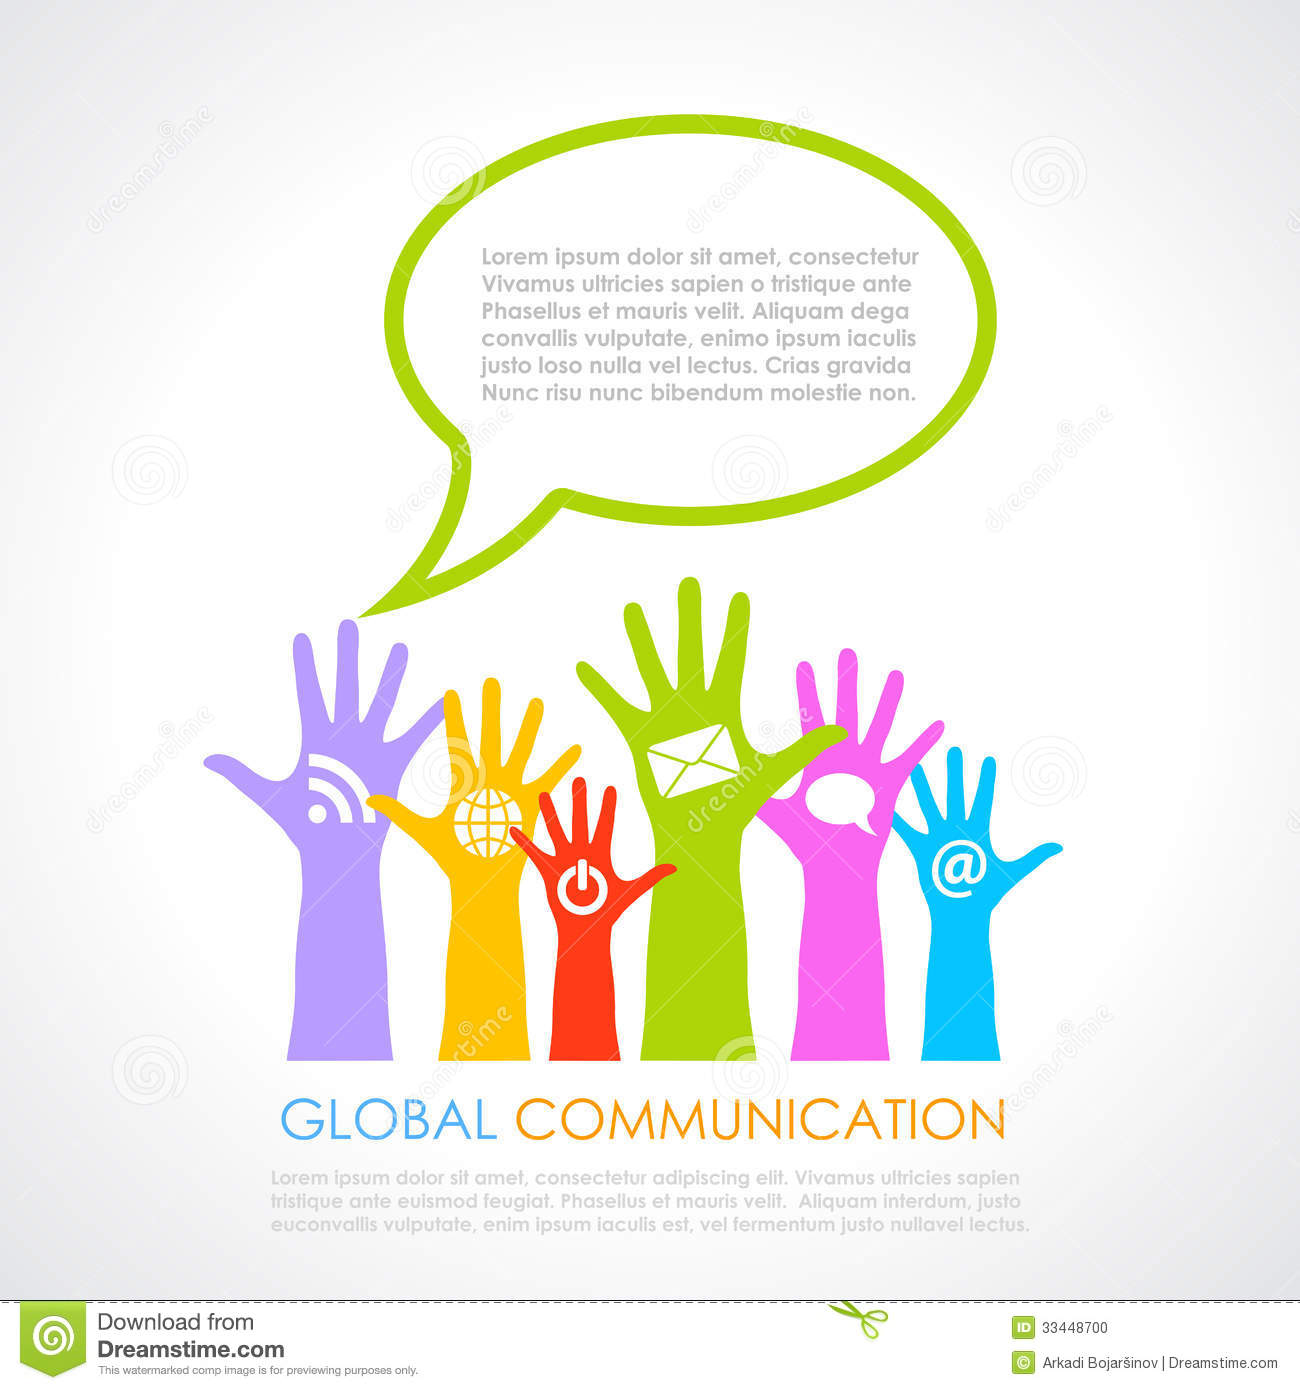 Global Communication Poster Stock Photo - Image: 33448700